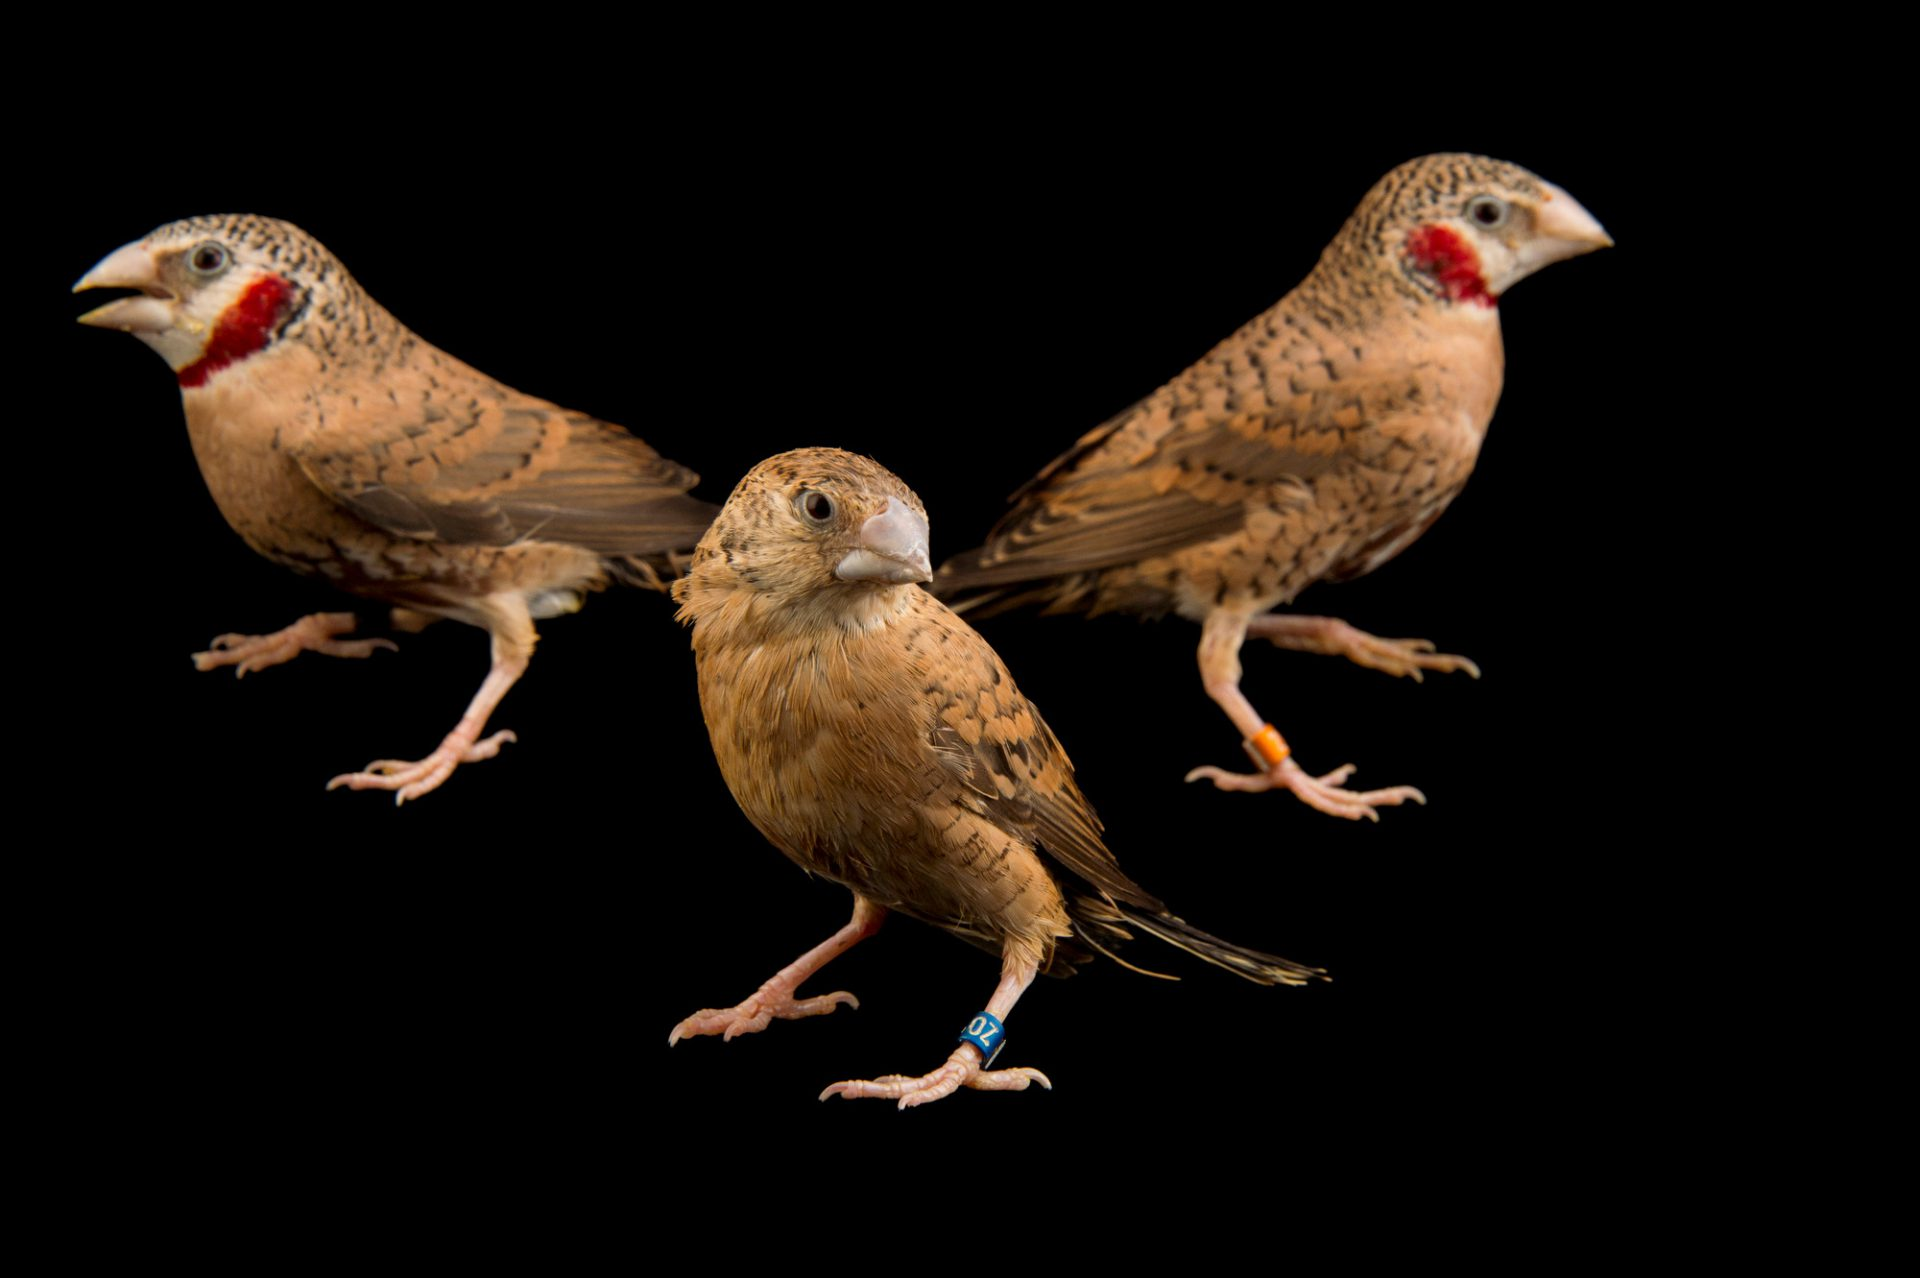 Picture of male and female cut-throat finches (Amadina fasciata) at the Tulsa Zoo. The male has red on his throat.